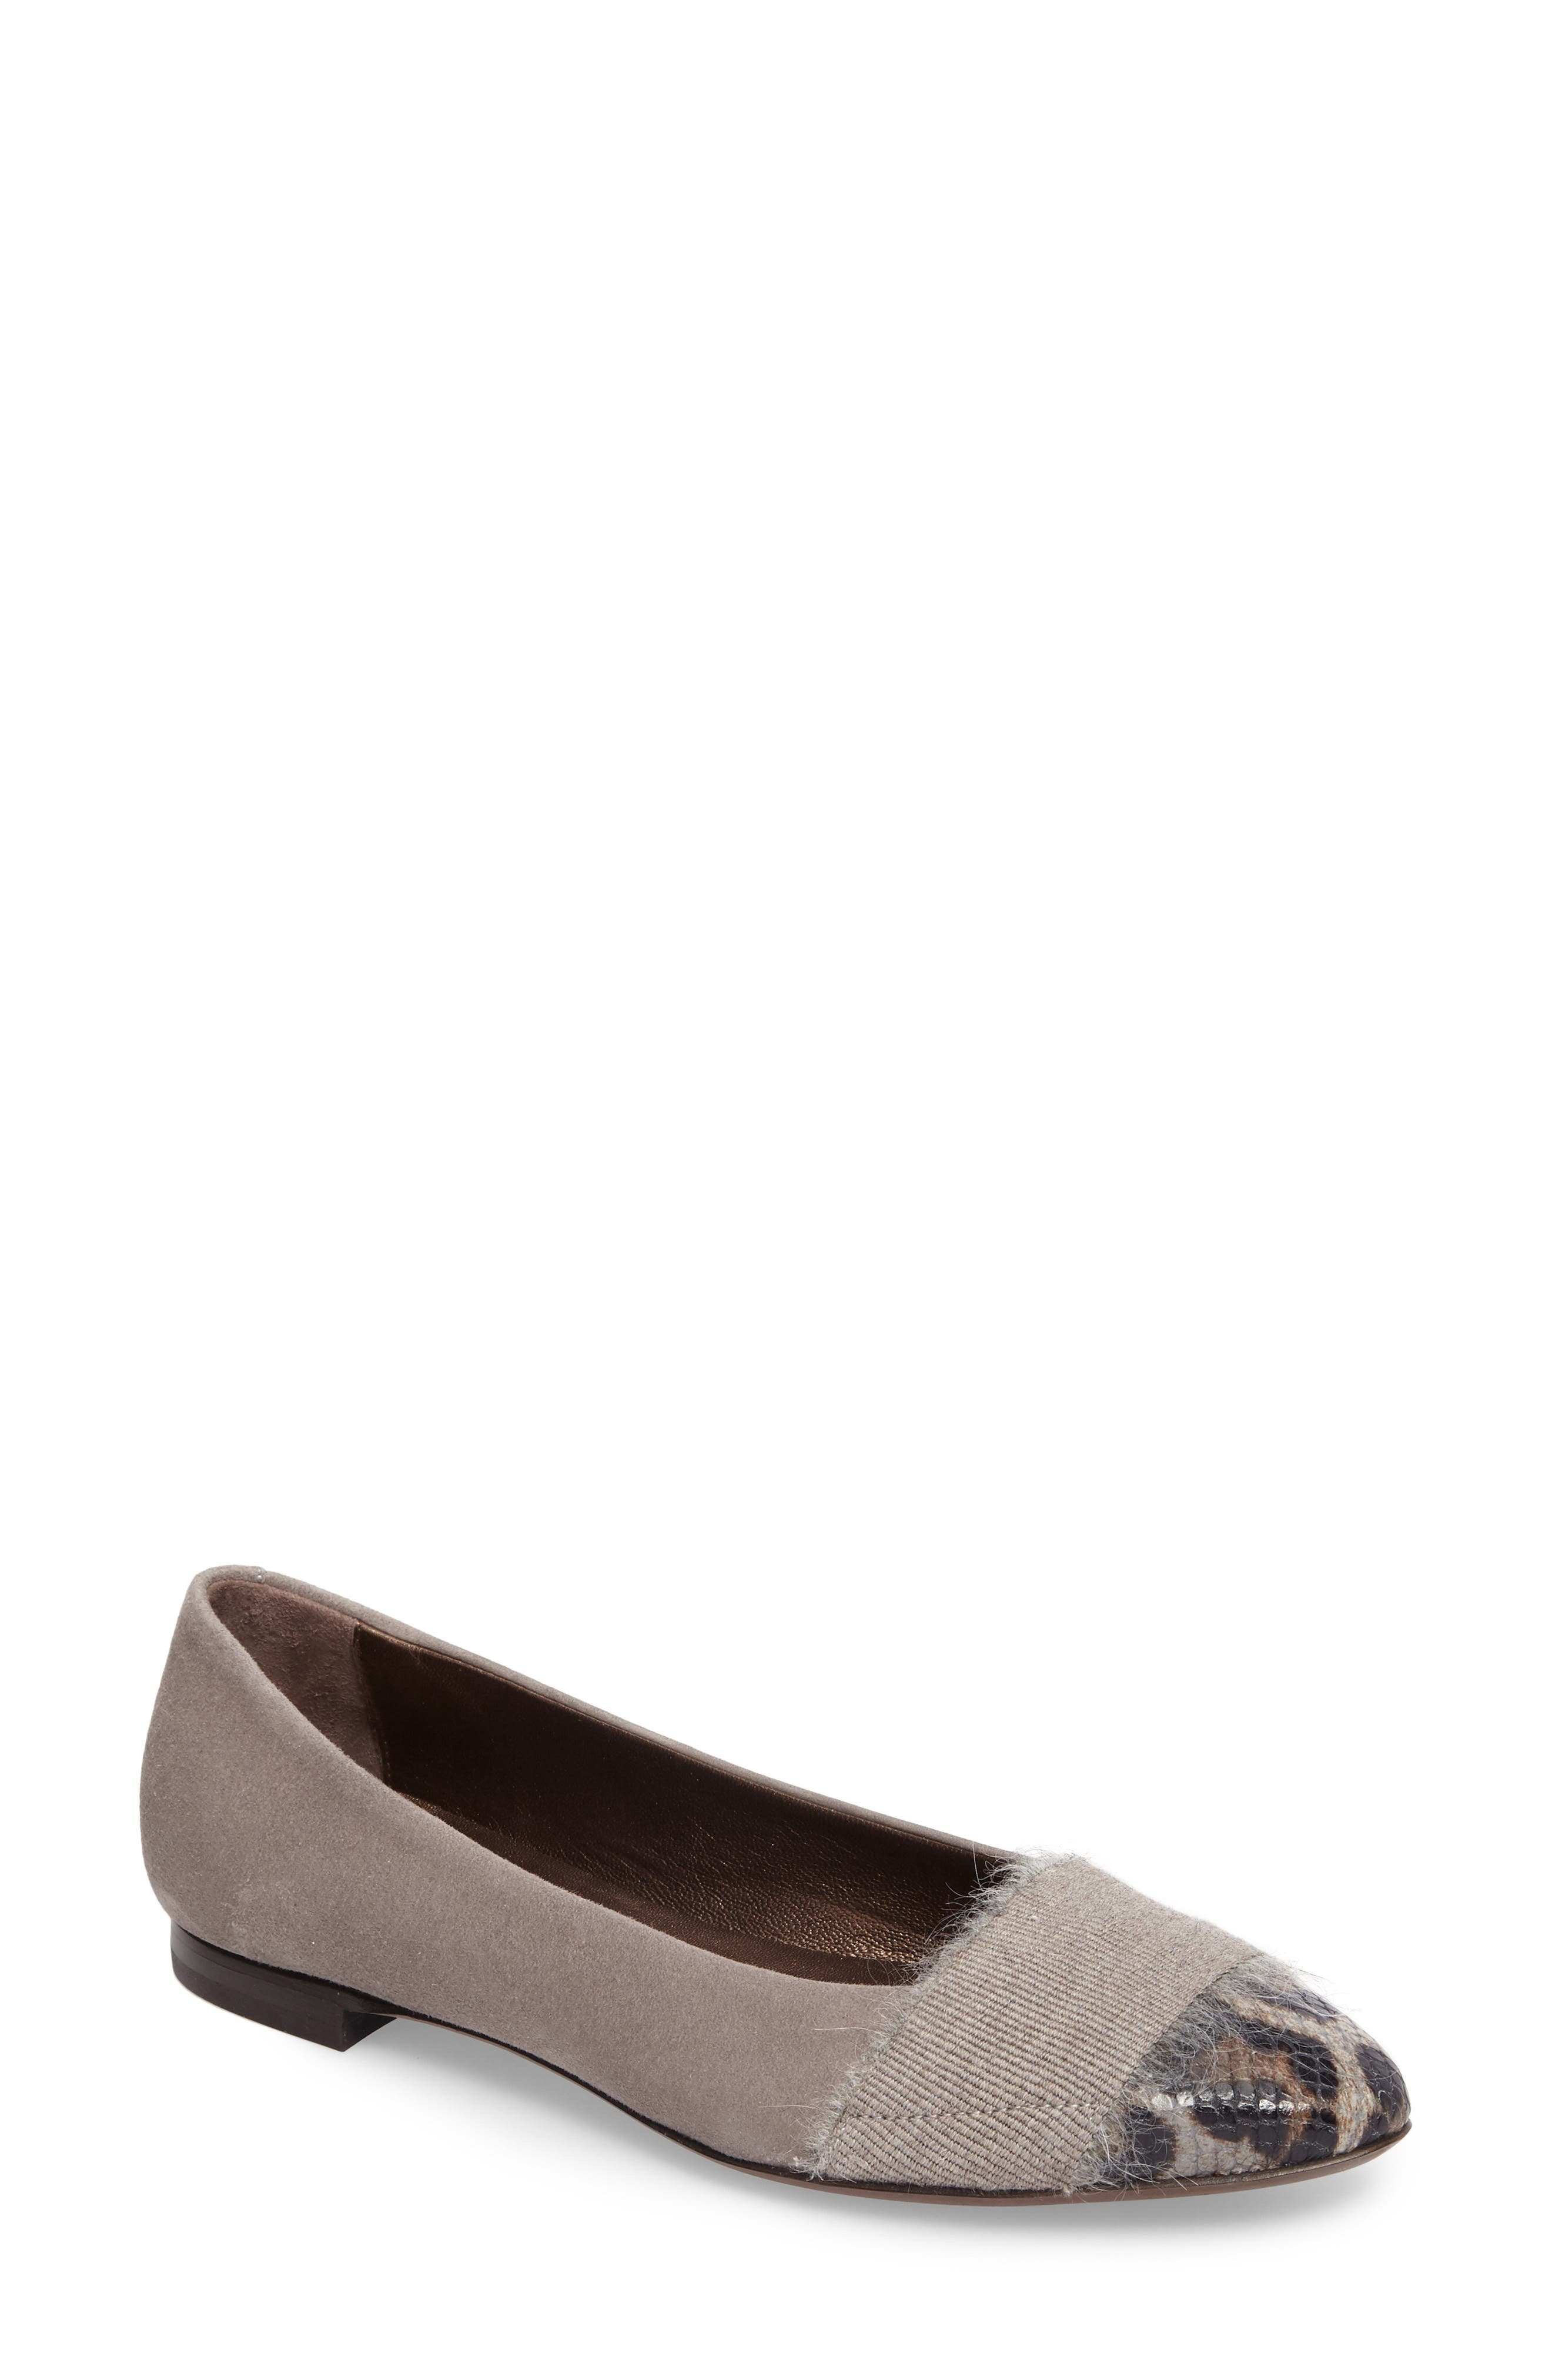 Belted Ballet Flat,                             Main thumbnail 1, color,                             Pewter Suede